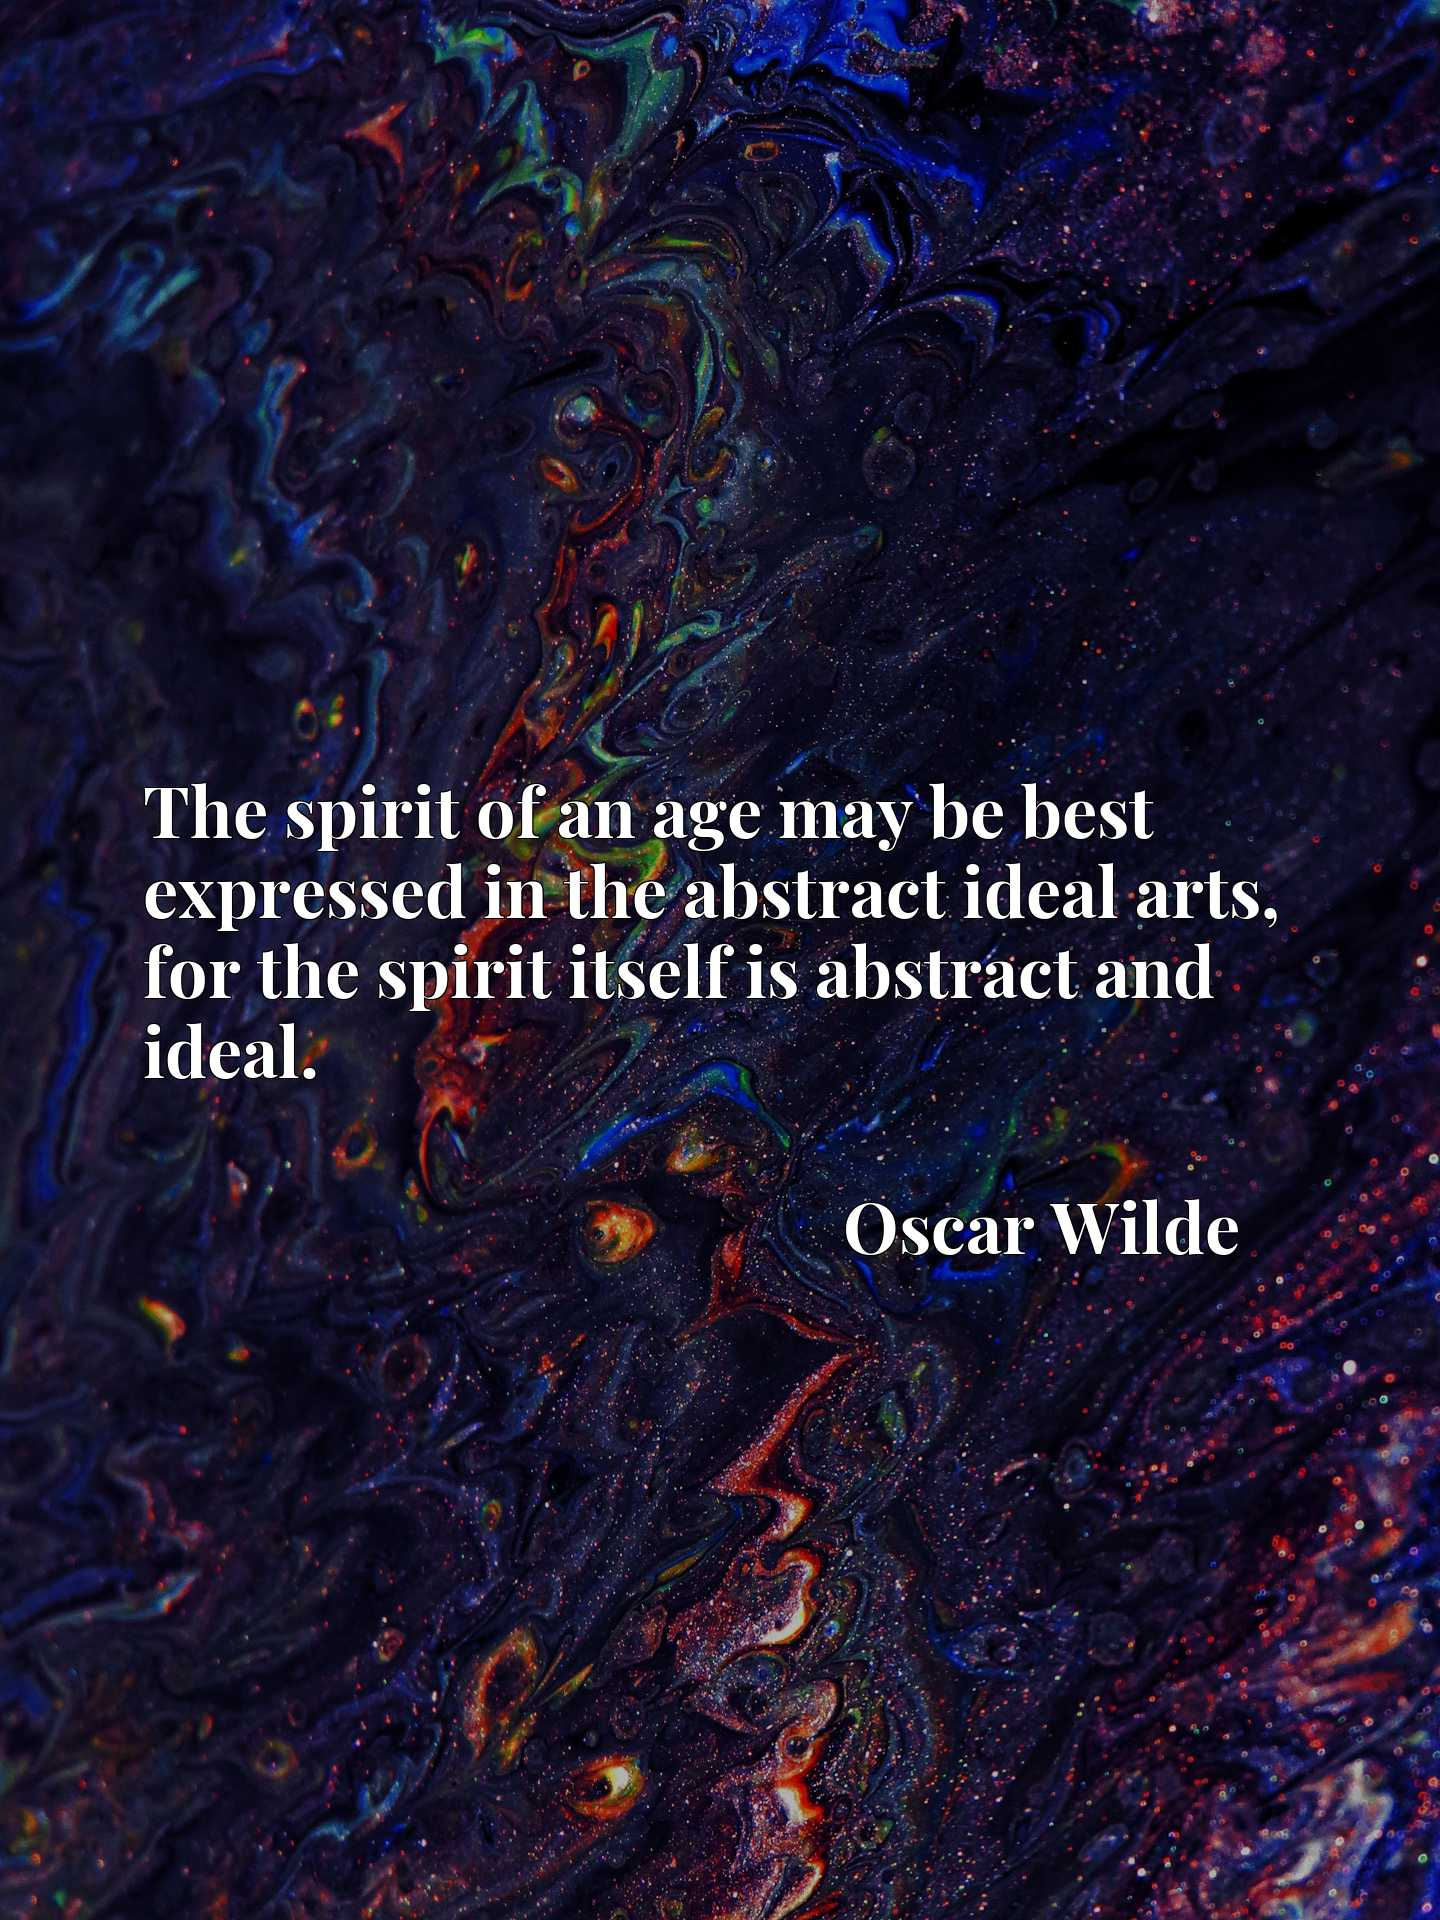 The spirit of an age may be best expressed in the abstract ideal arts, for the spirit itself is abstract and ideal.